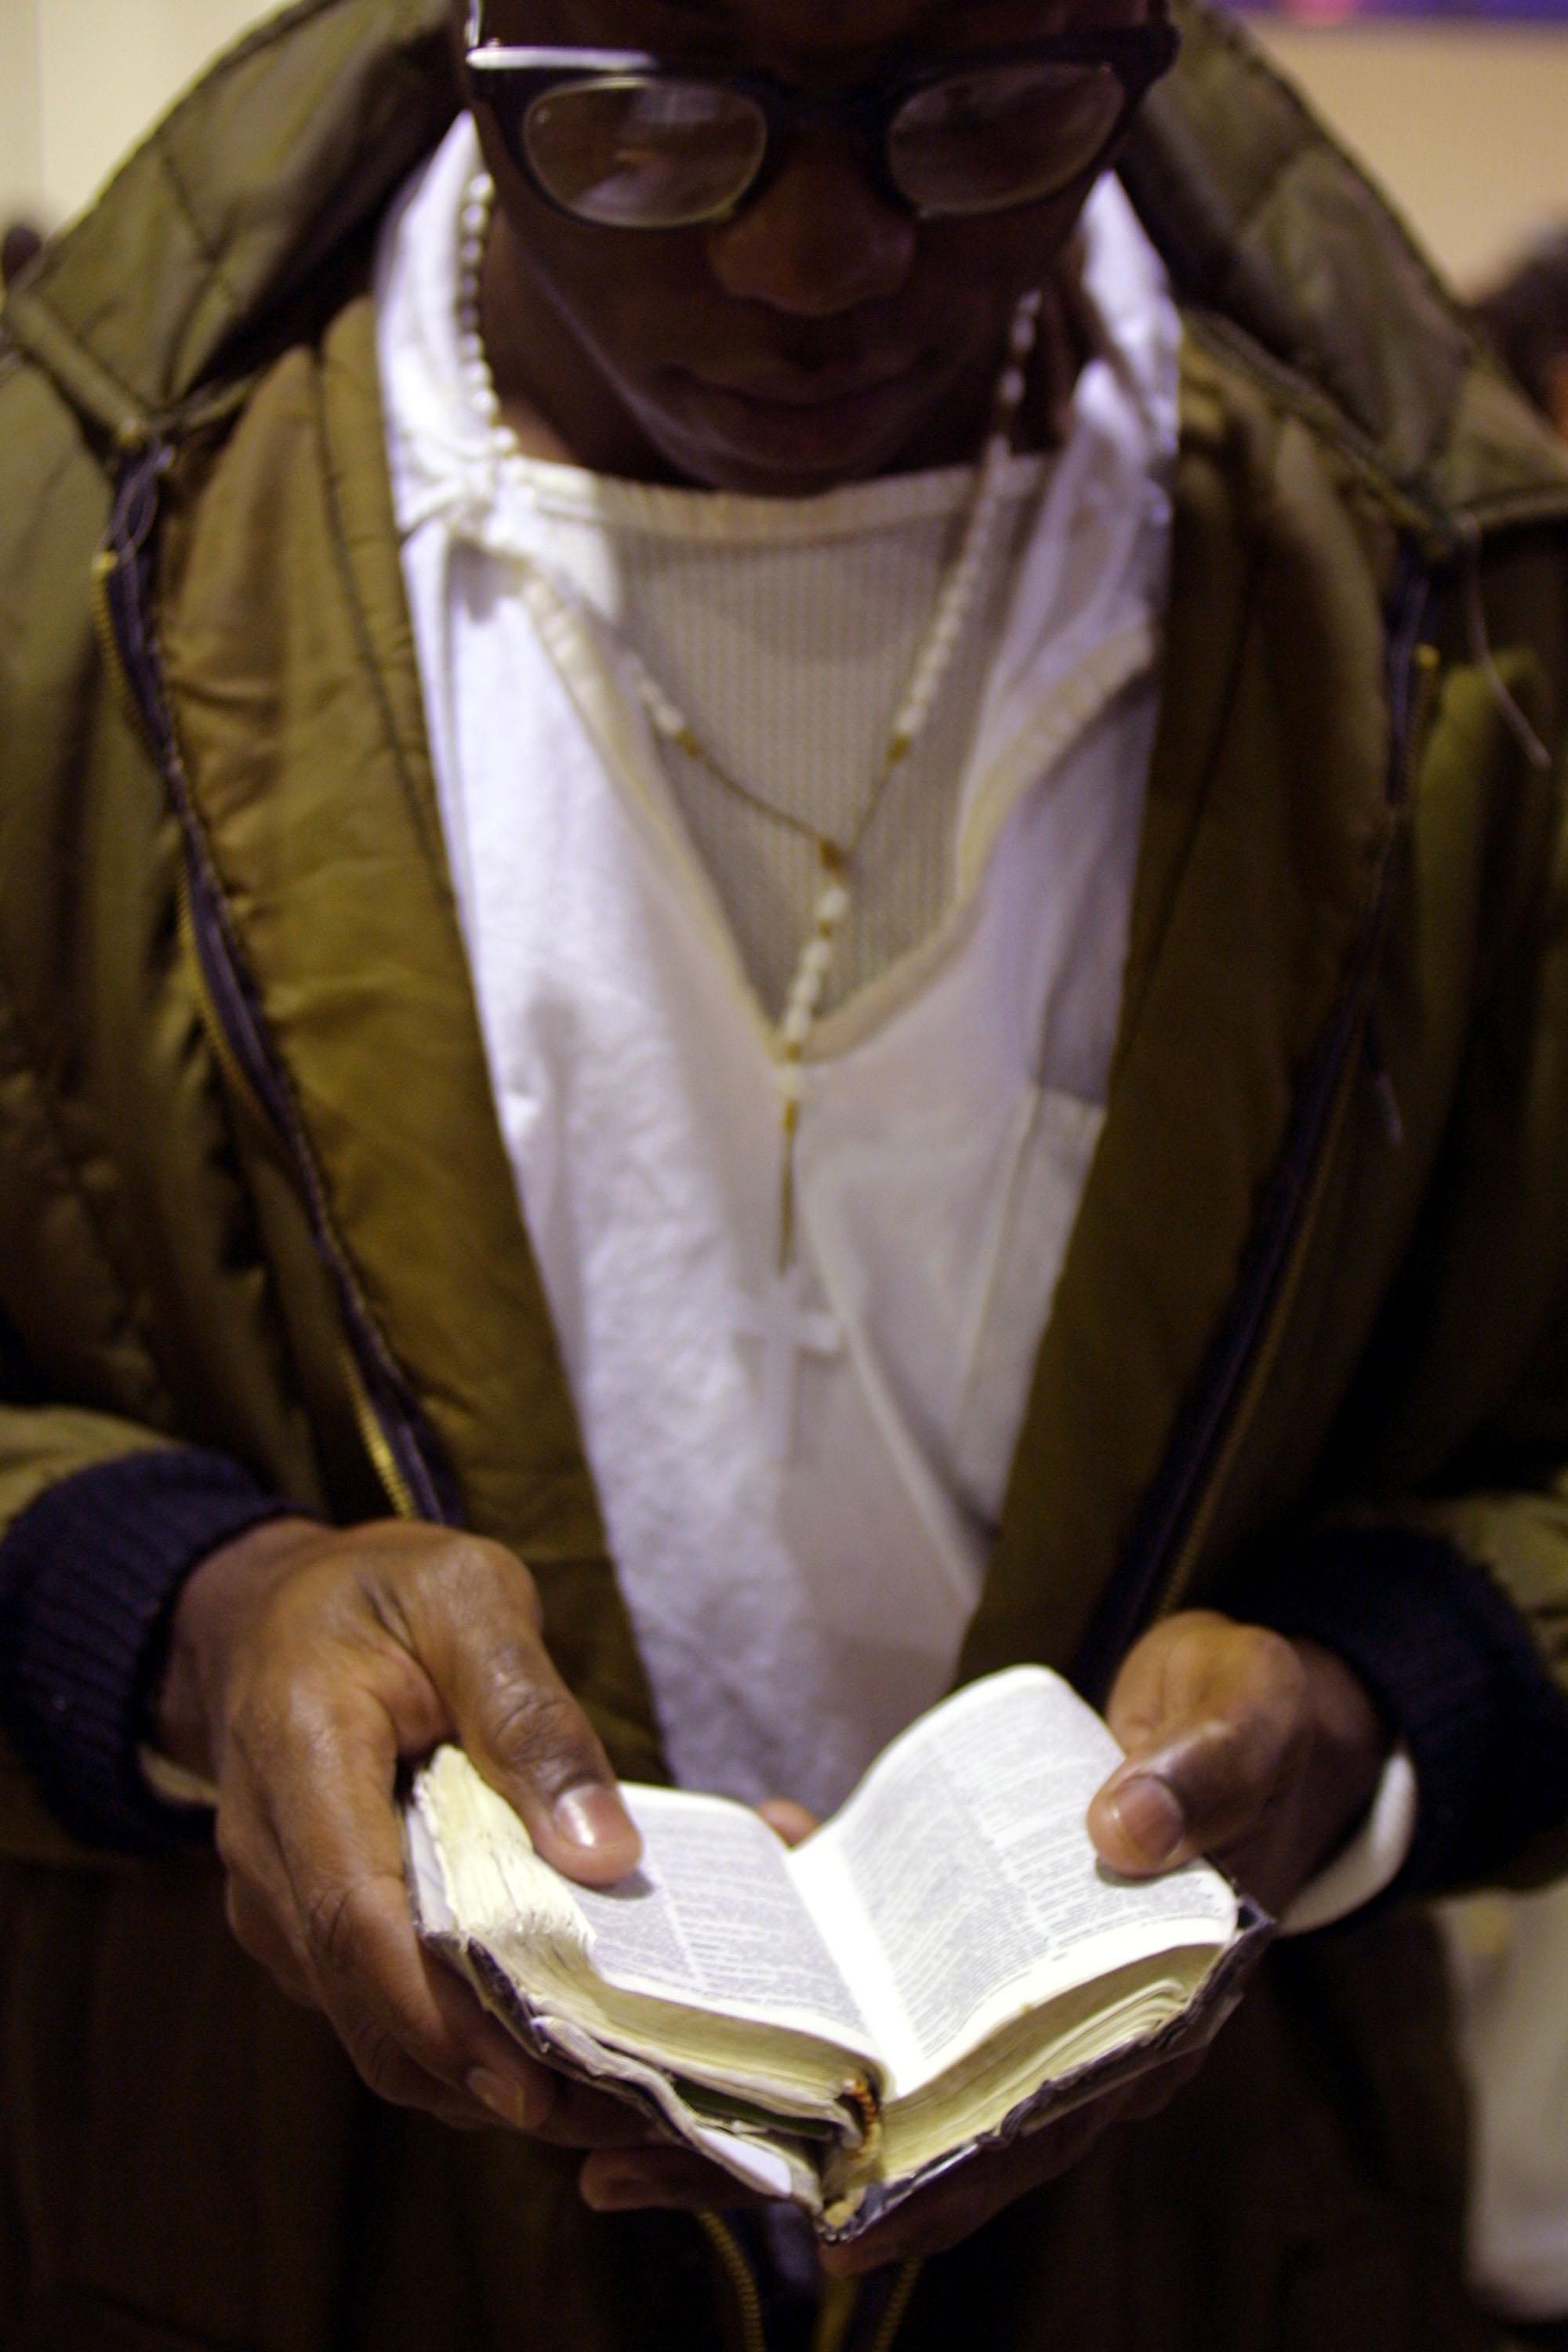 An inmate reads his bible.